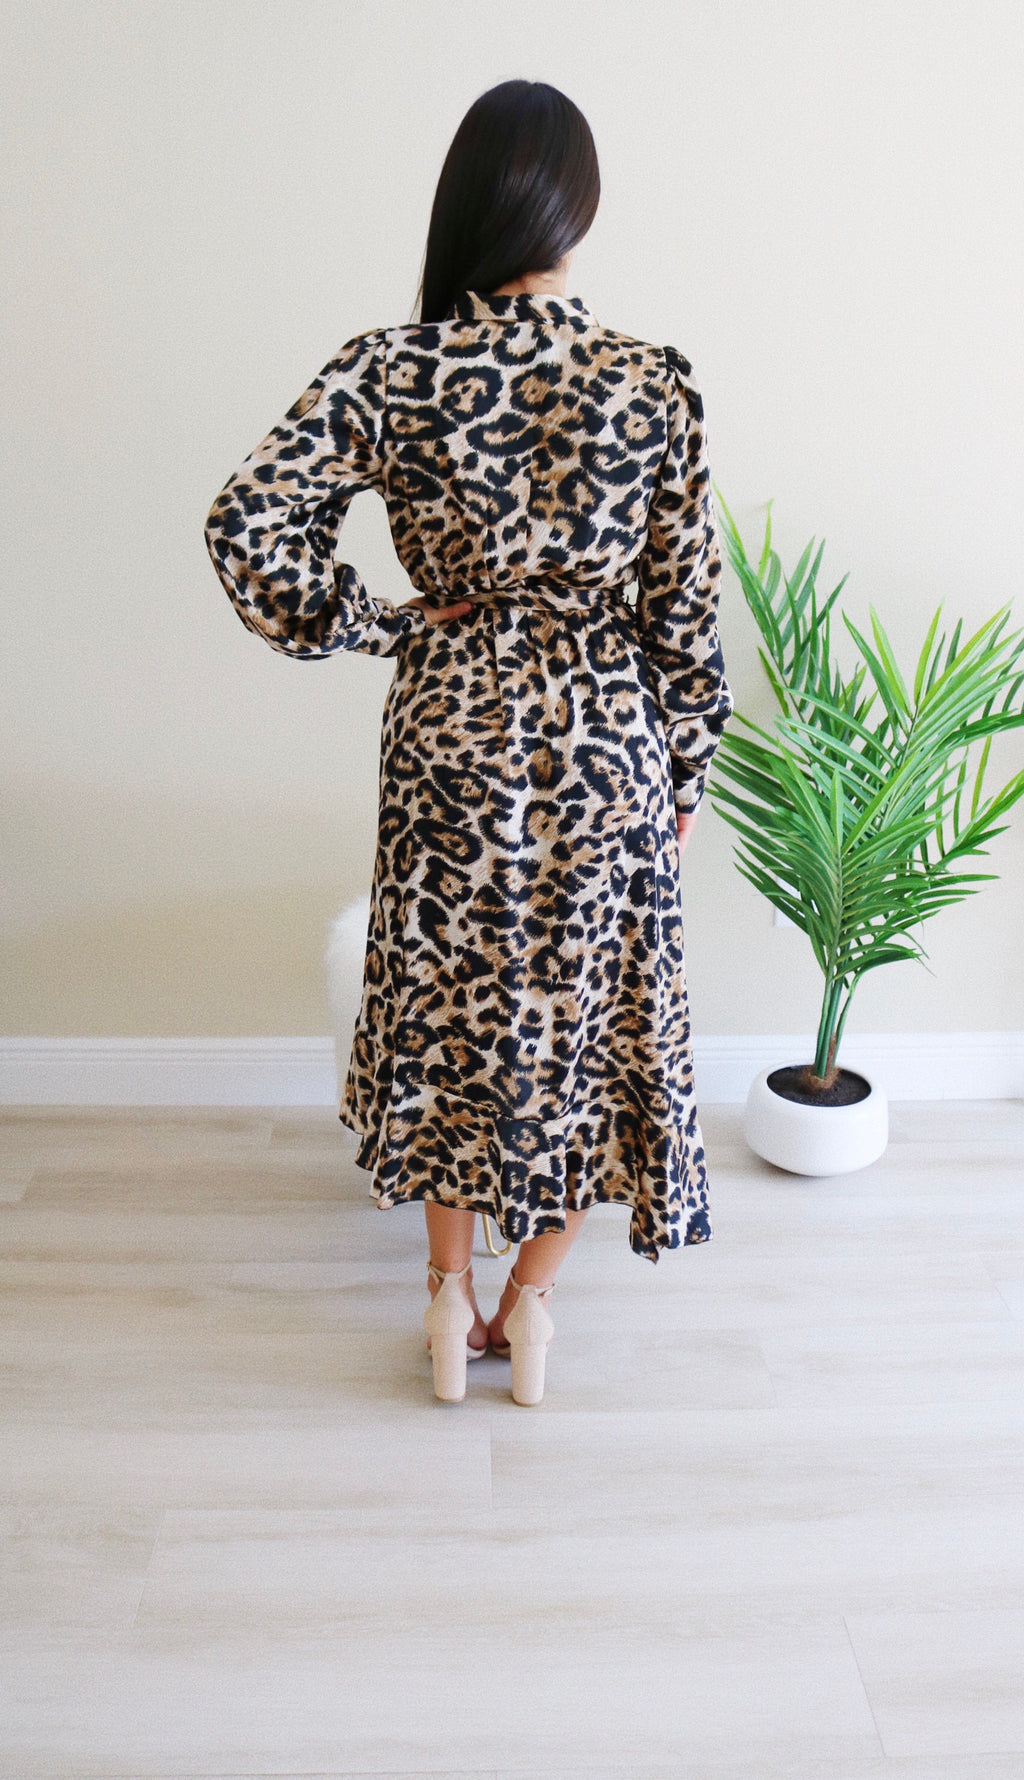 Elizabeth Leopard Dress